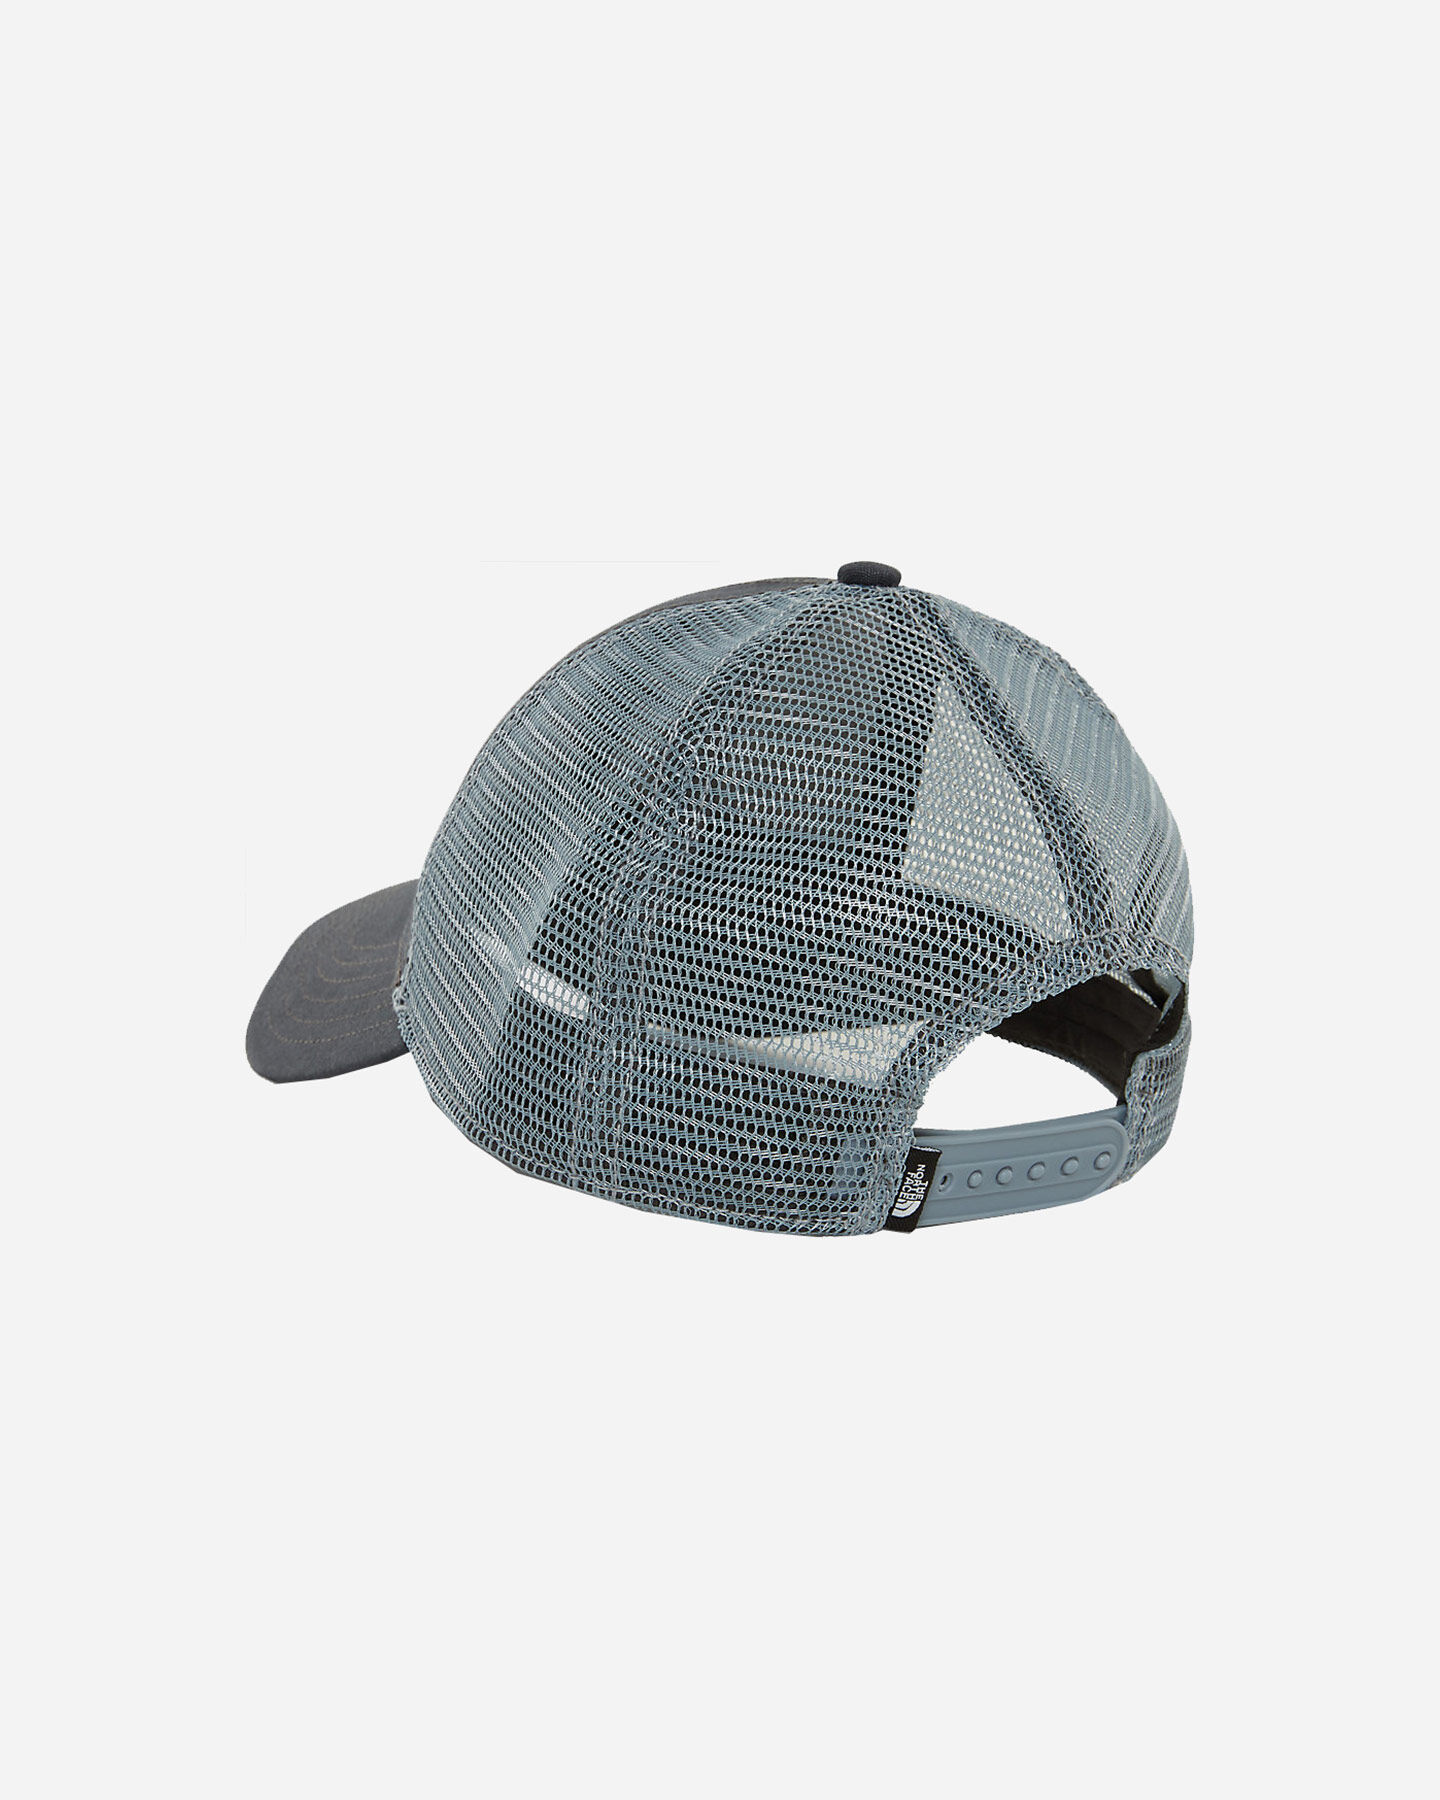 Cappellino THE NORTH FACE MUDDER TRUCKER S5200793|0C5|OS scatto 1